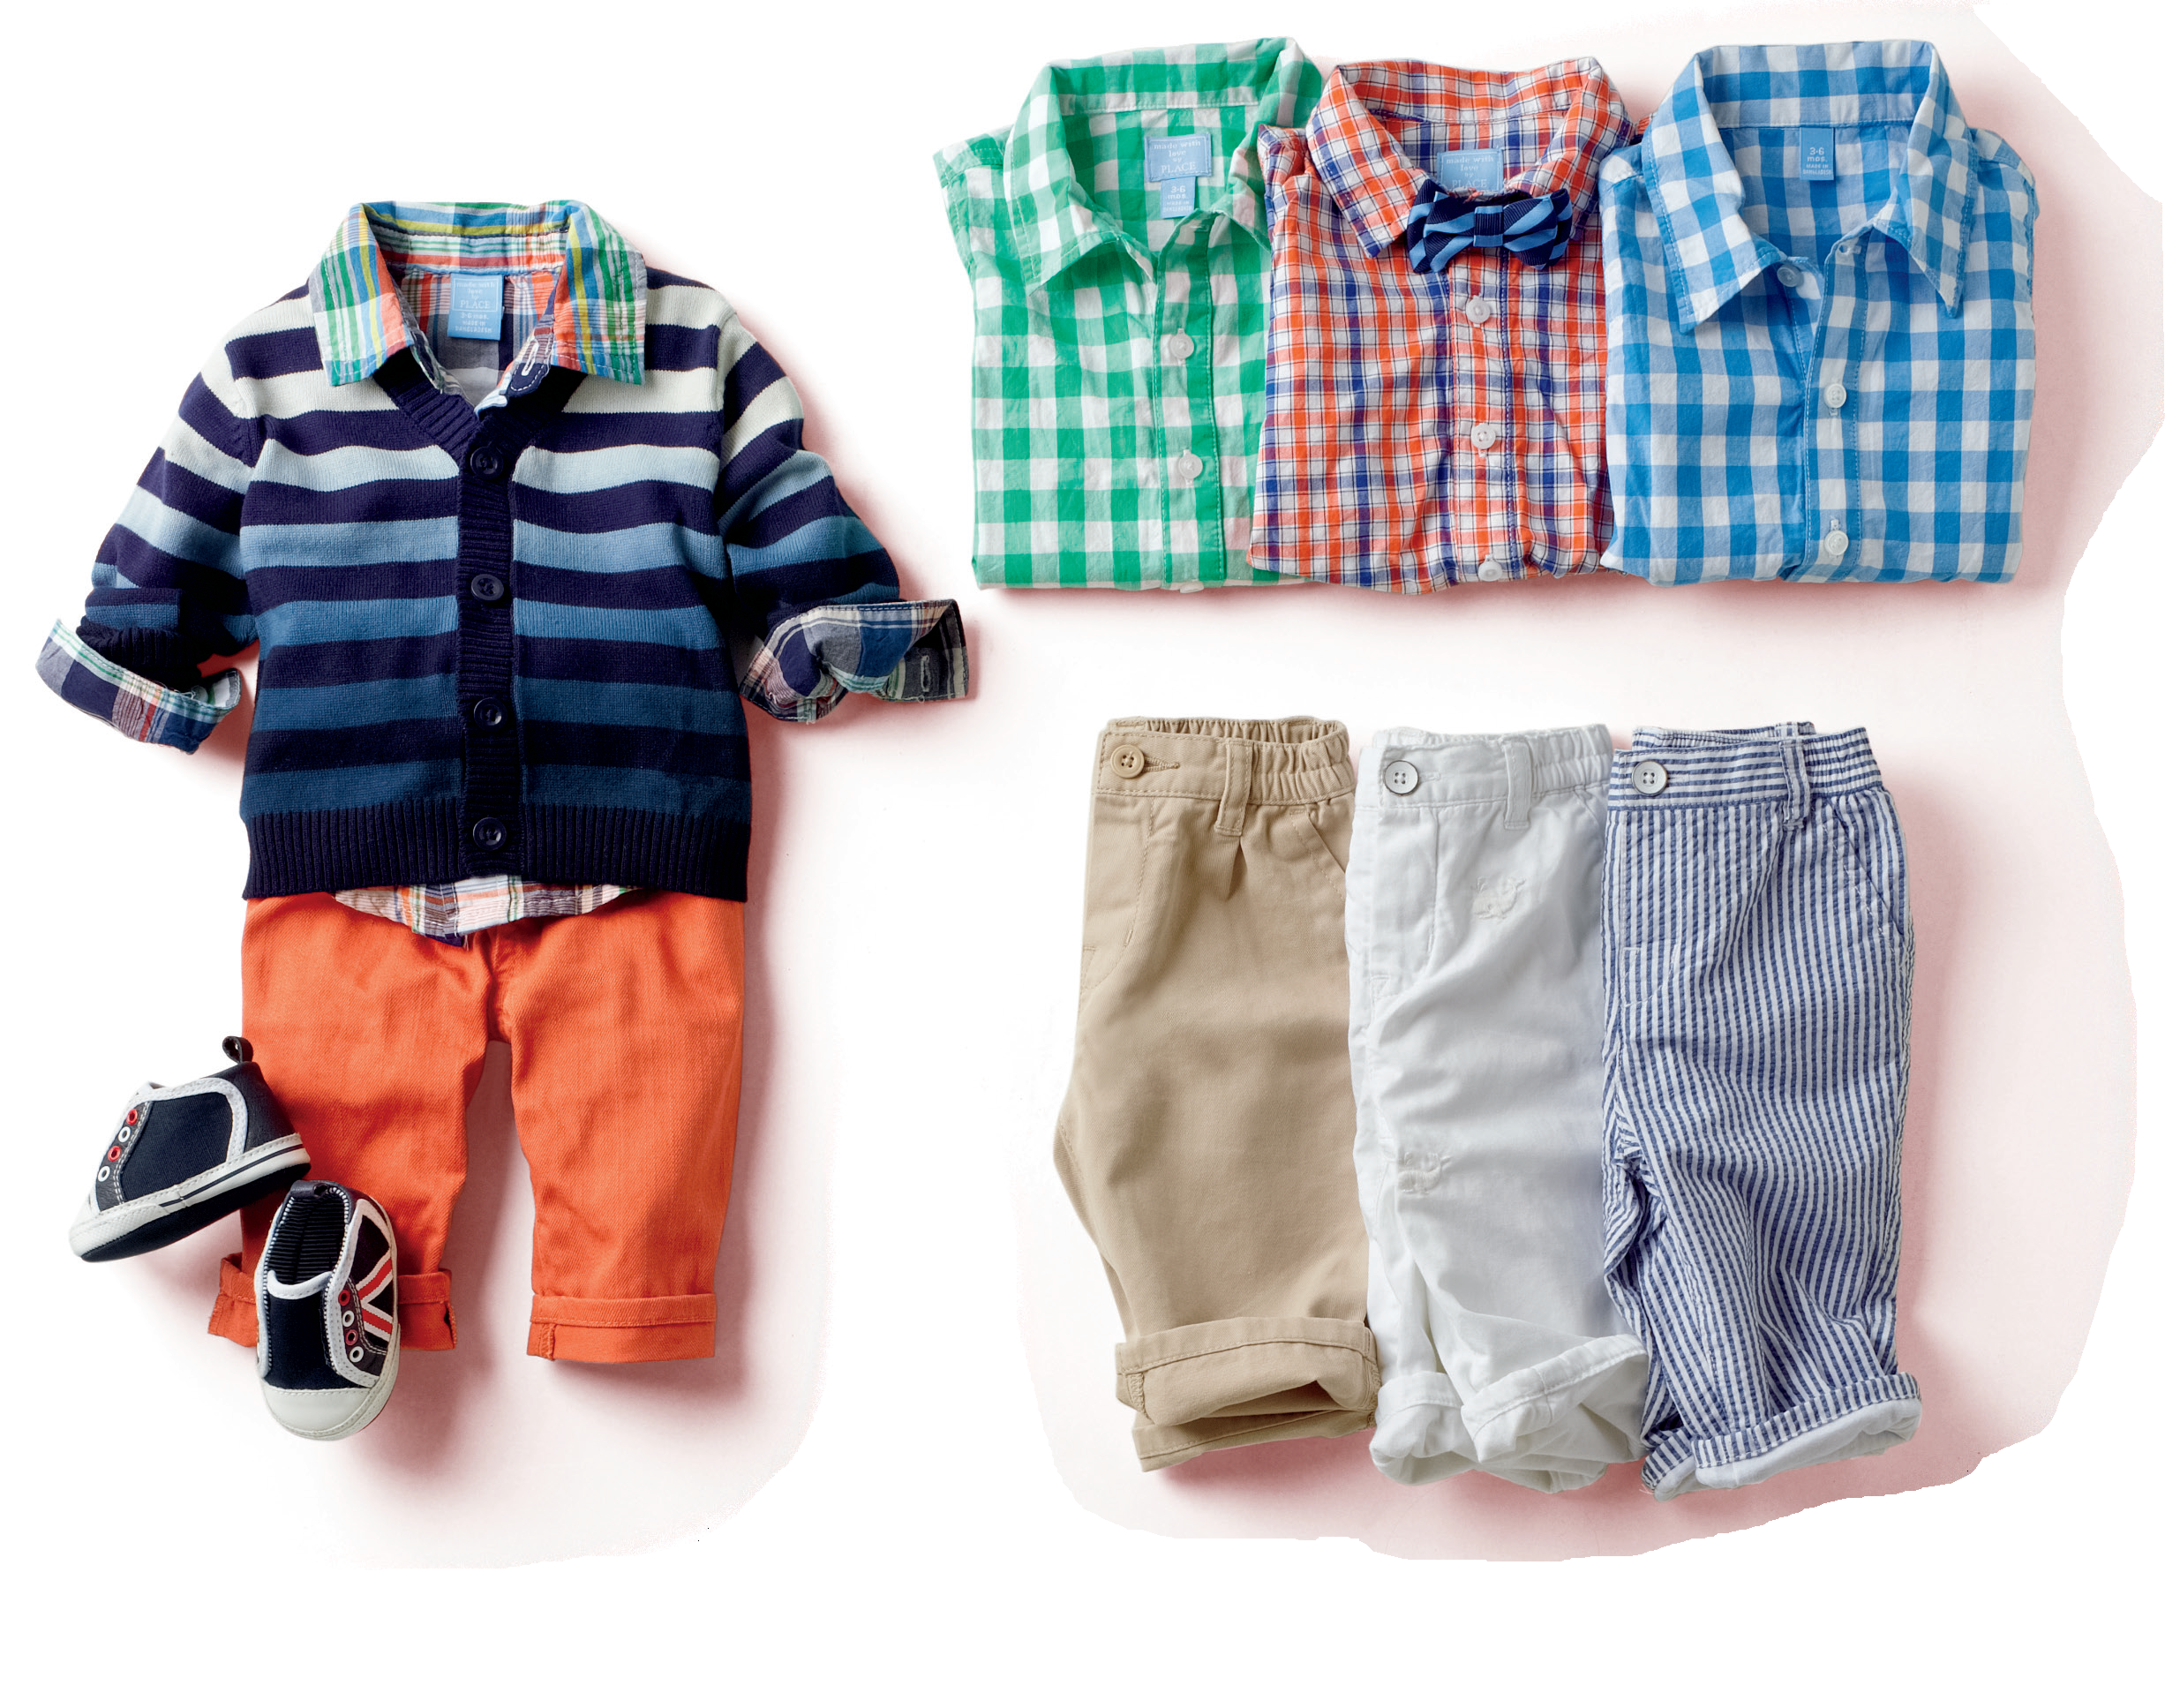 Spring Dressy The Children S Place Babyclothes Sale Looking For